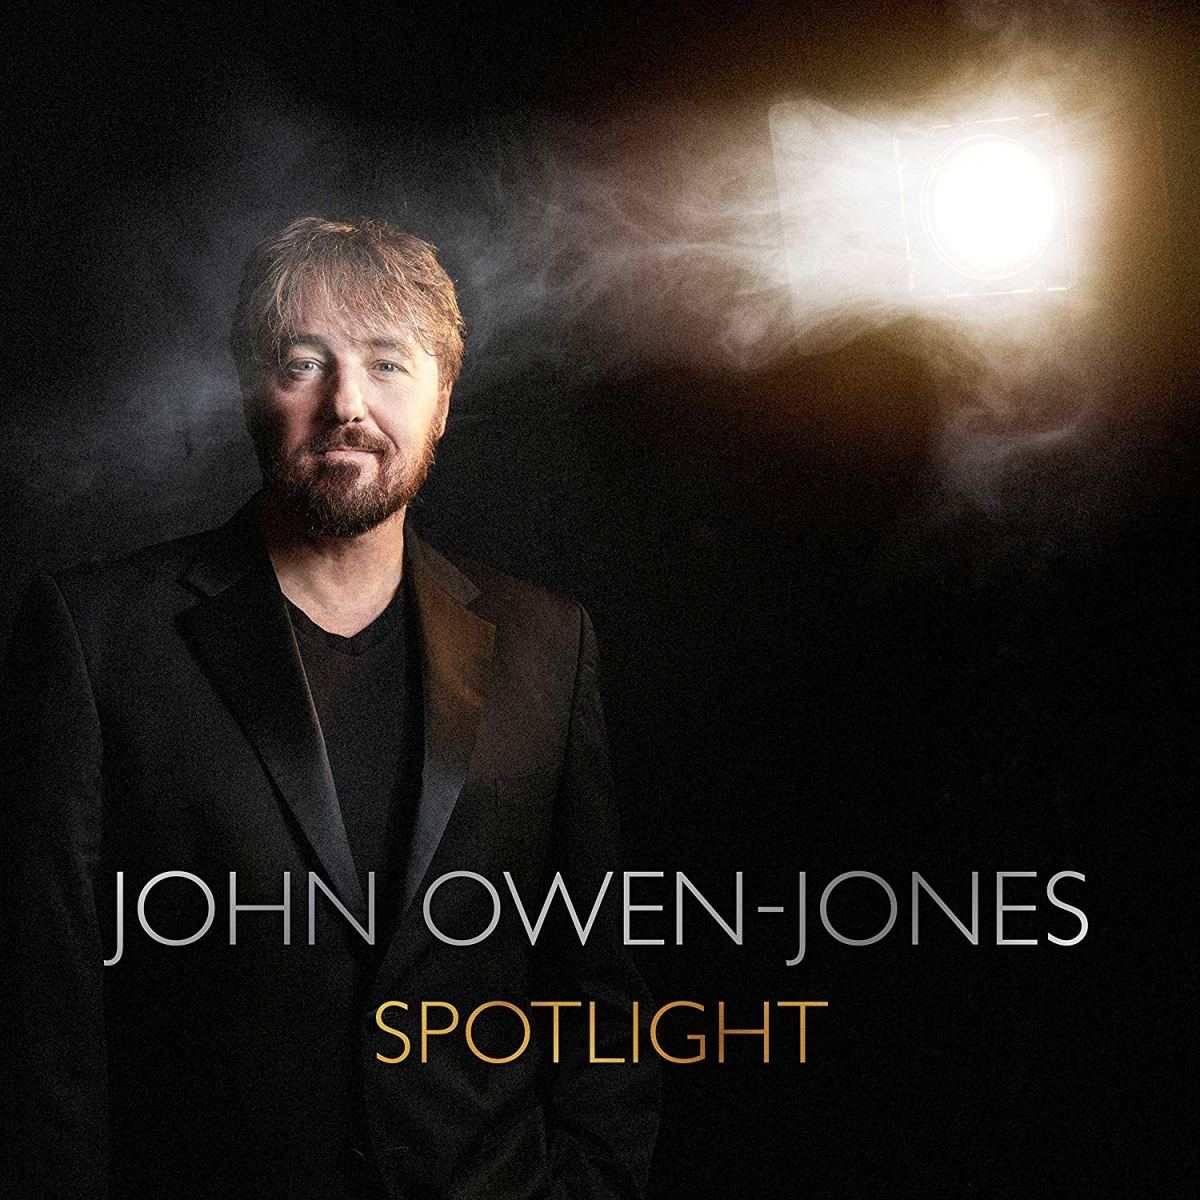 John Owen-Jones | Spotlight | Album Review